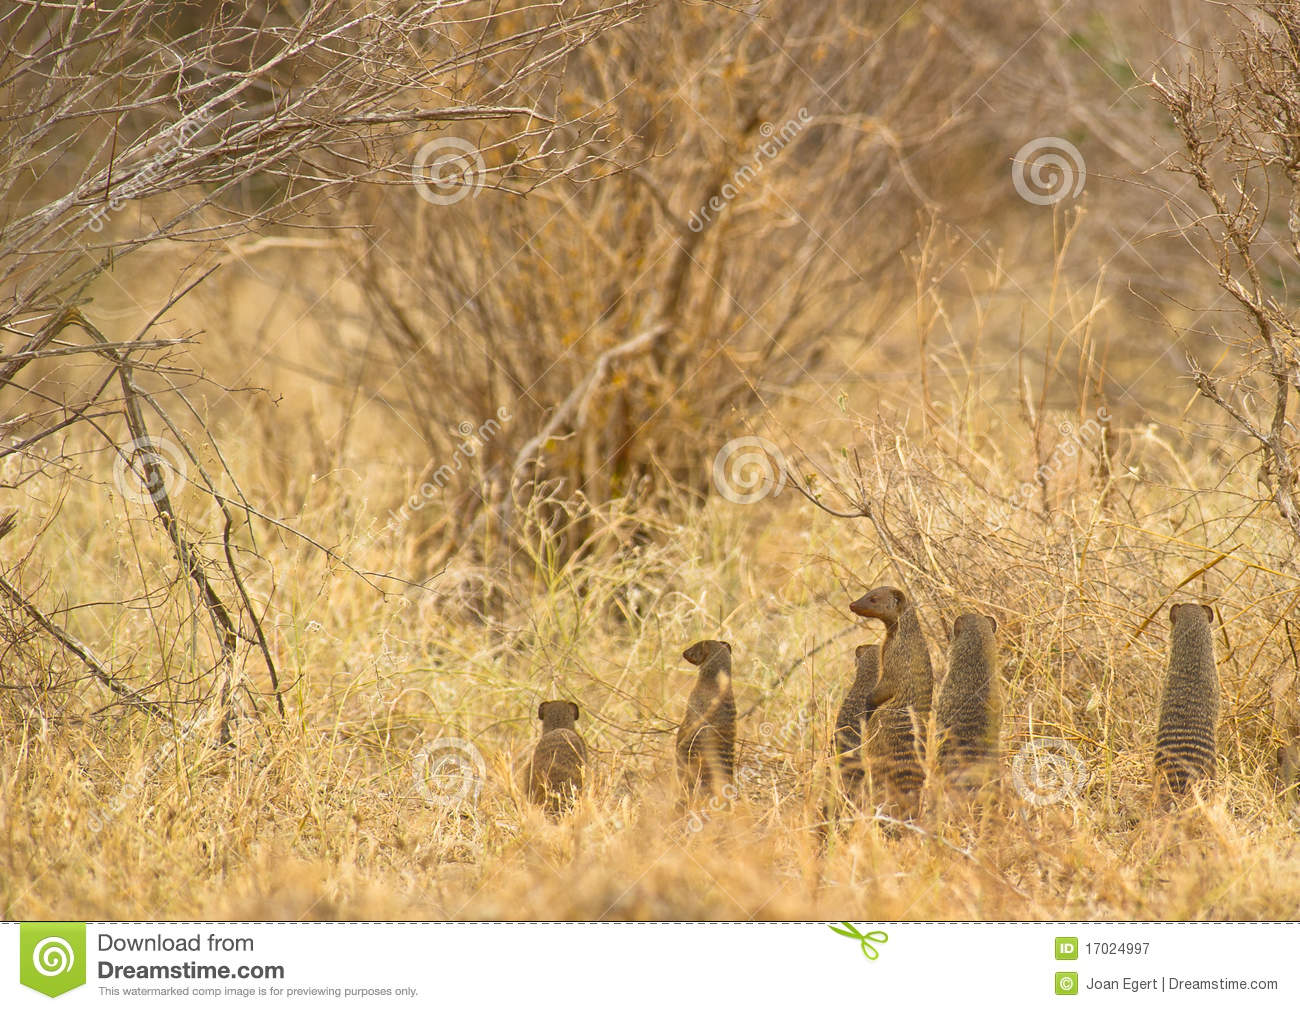 Alarm in Banded Mongoose family